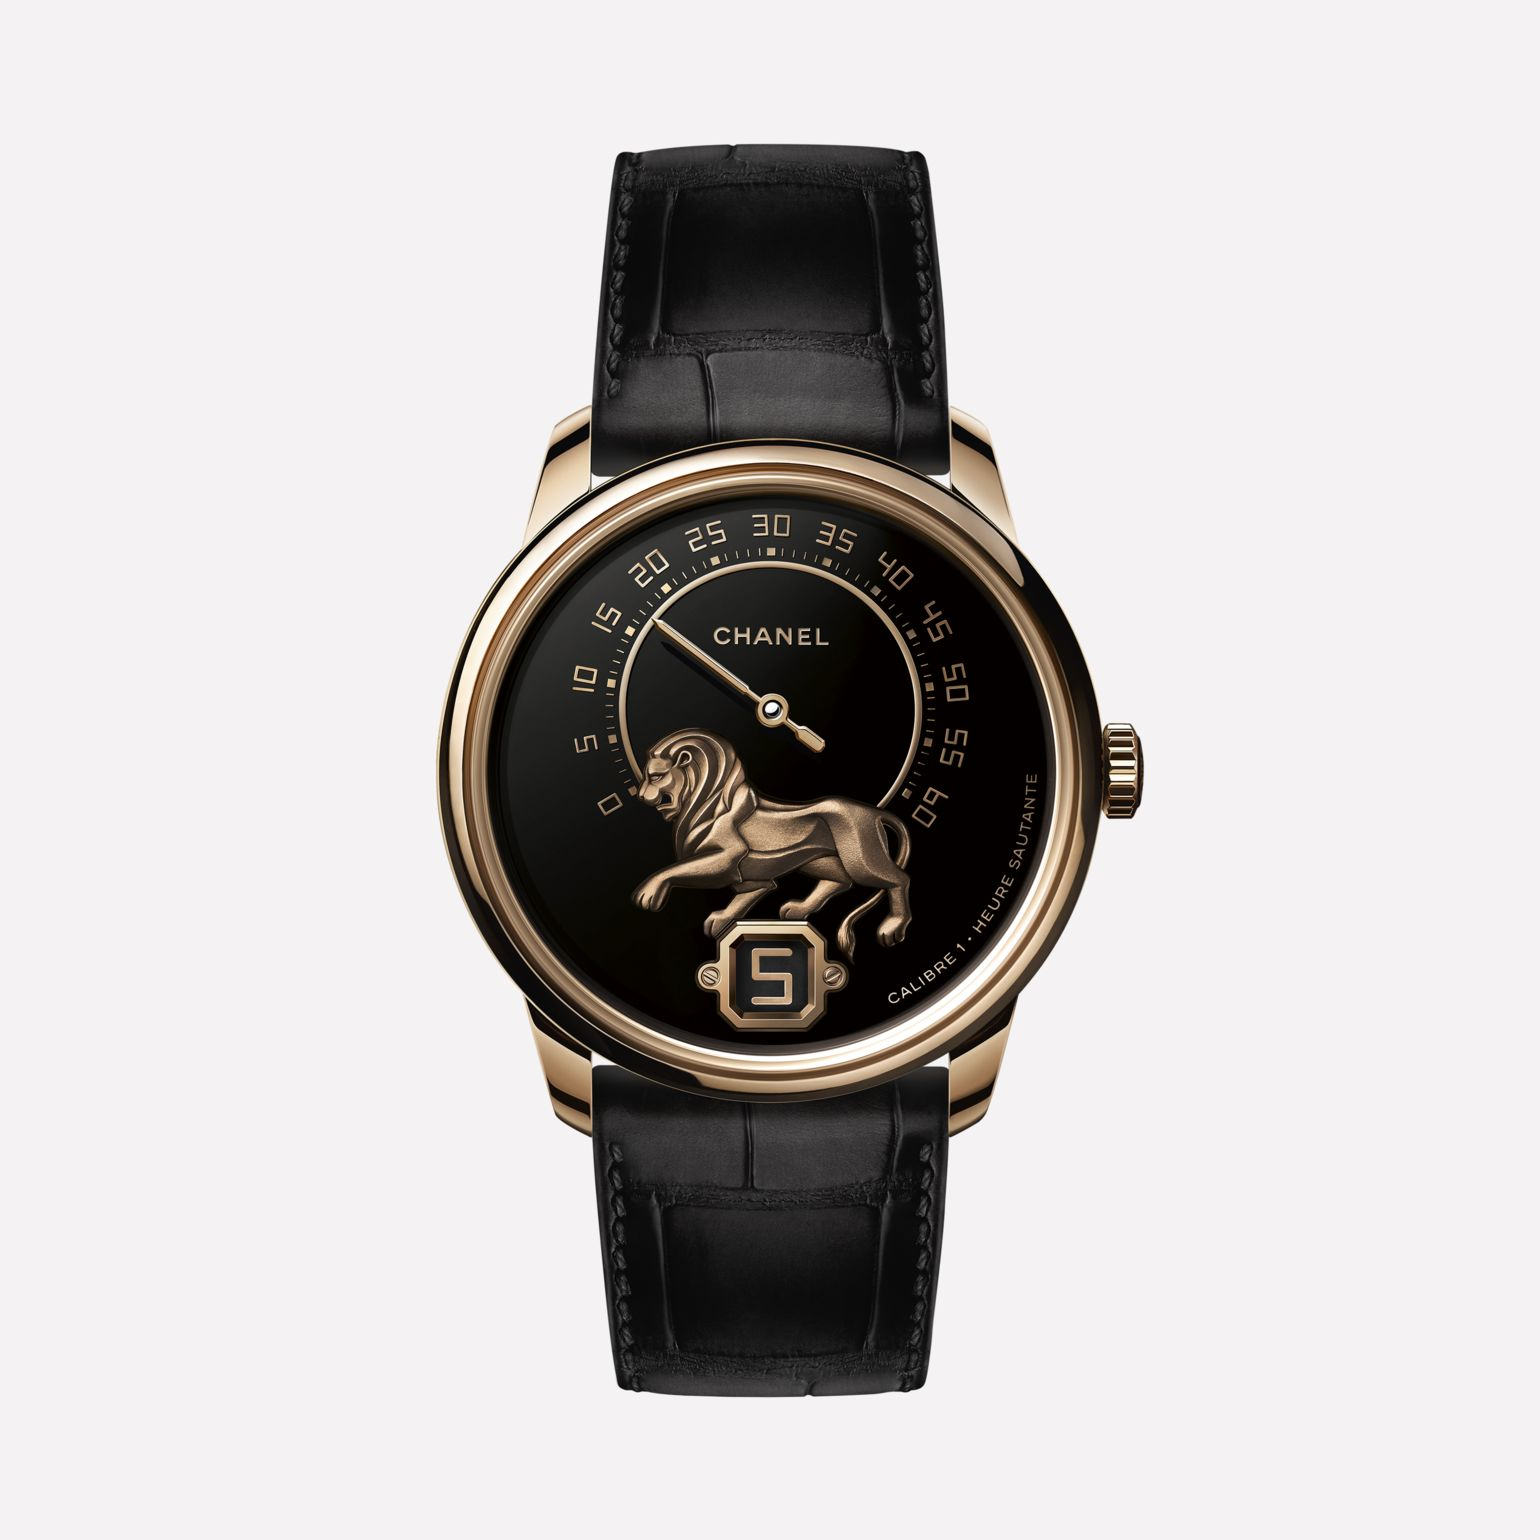 Monsieur Watch BEIGE GOLD,  Grand Feu enamel with gold sculpted lion dial, jumping hour and 240° retrograde minute